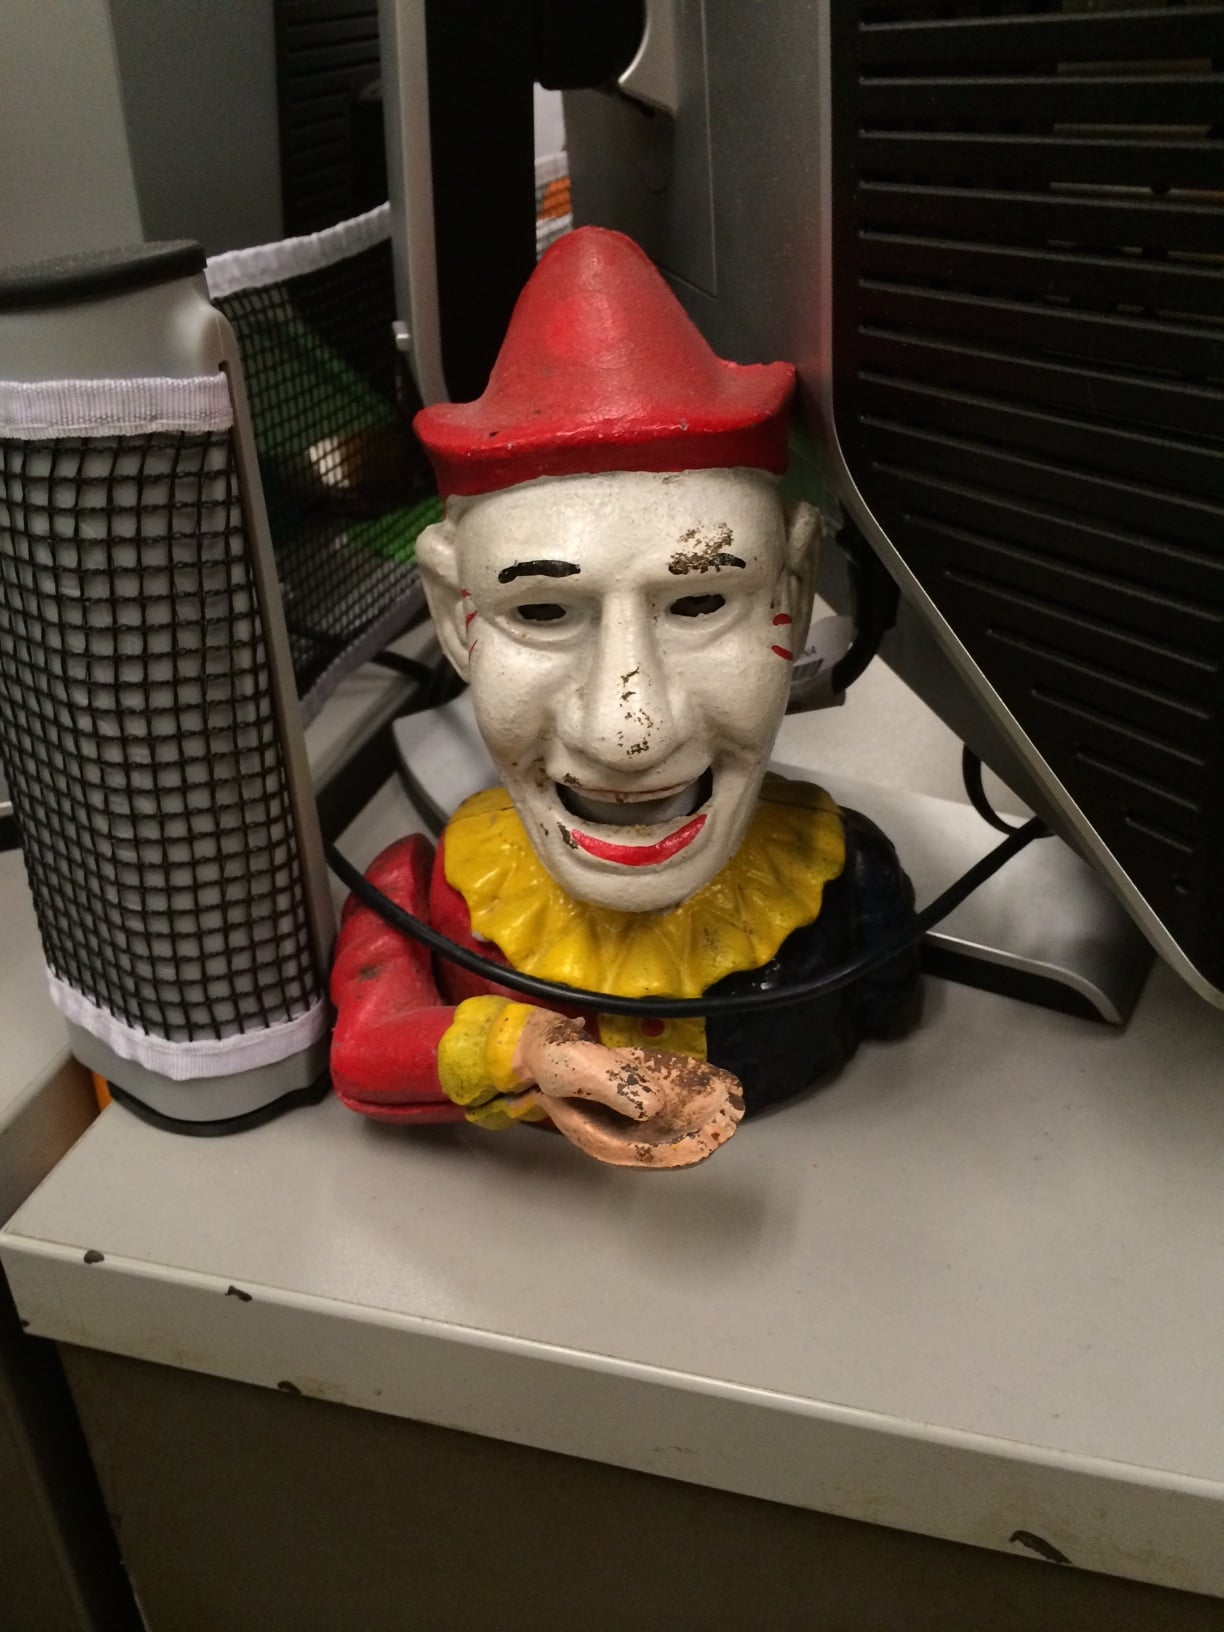 This was on a random desk, and it's TERRIFYING.